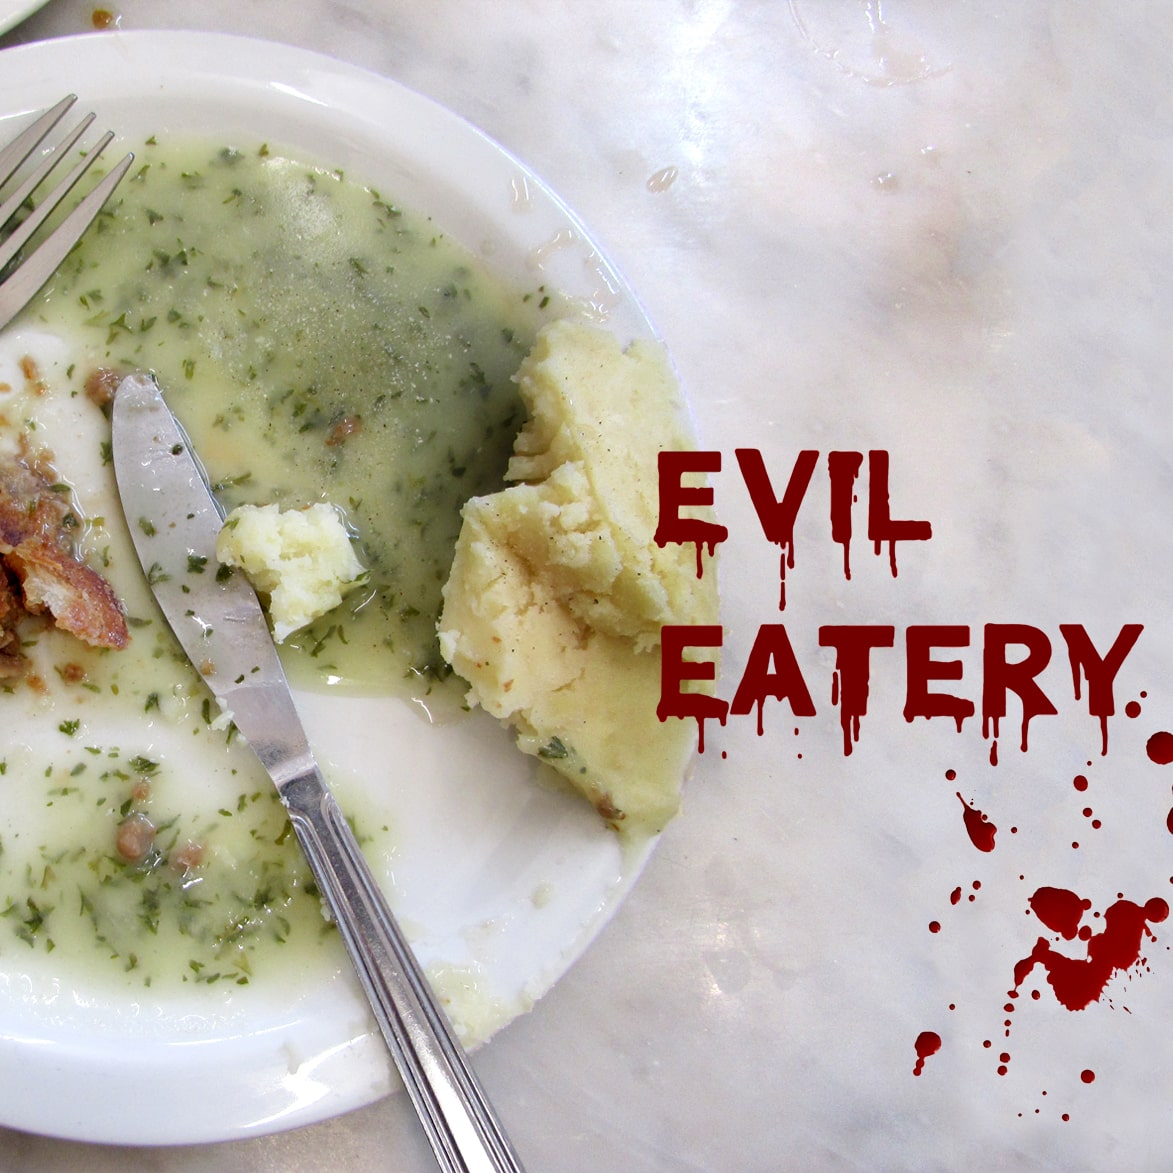 EVIL EATERY WEBSIT SQUARE copy-min.jpg